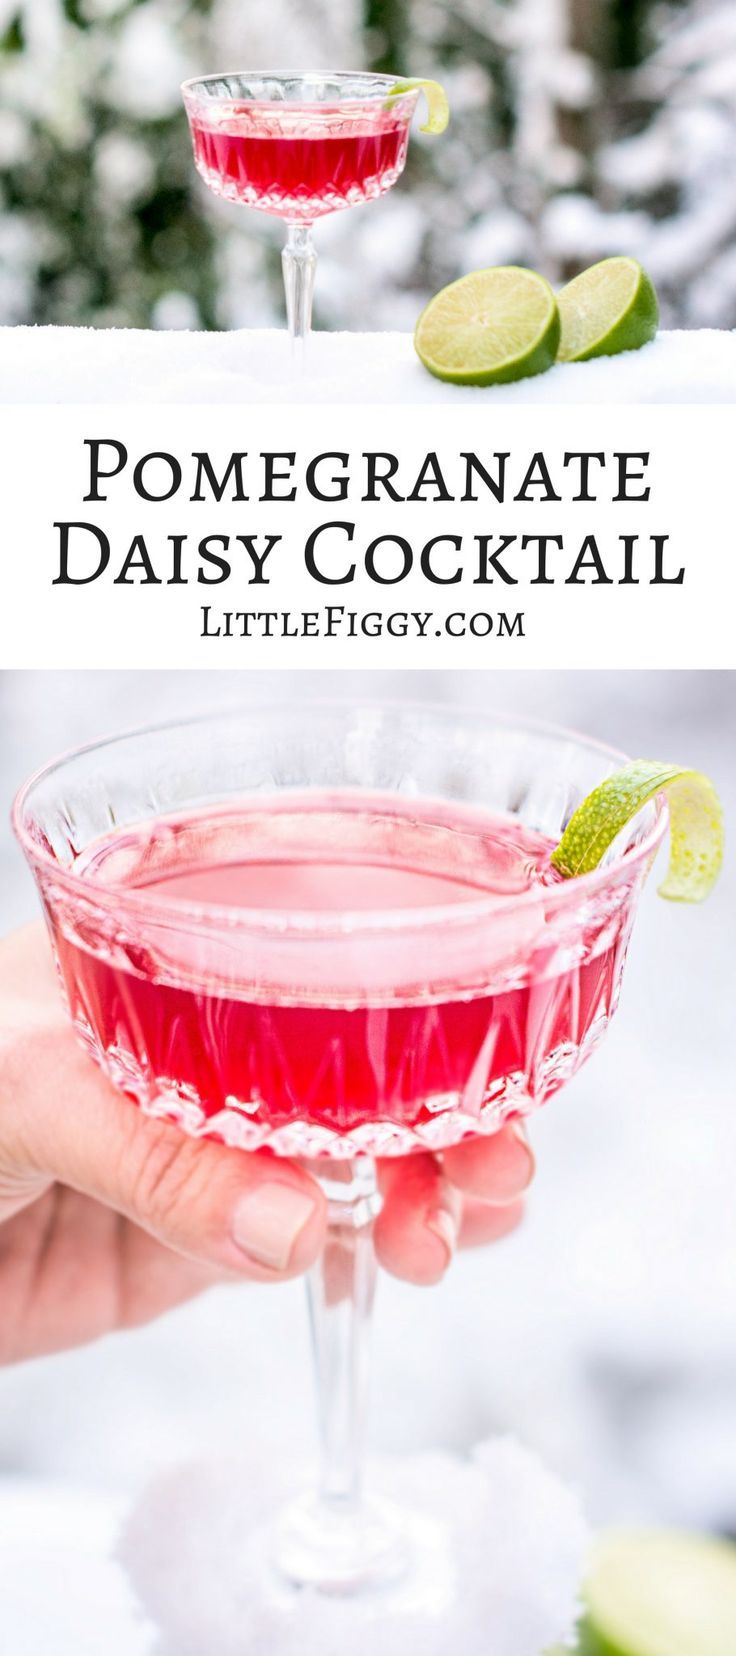 A gorgeous drink that's perfect for celebrating the holidays, the Pomegranate Daisy Cocktail! Get the recipe at Little Figgy Food! via @LittleFiggyFood